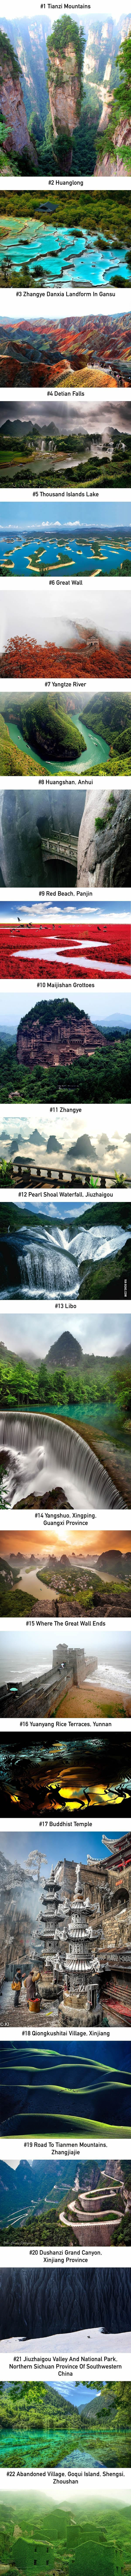 22 Reasons Why You Should Visit China - 9GAG